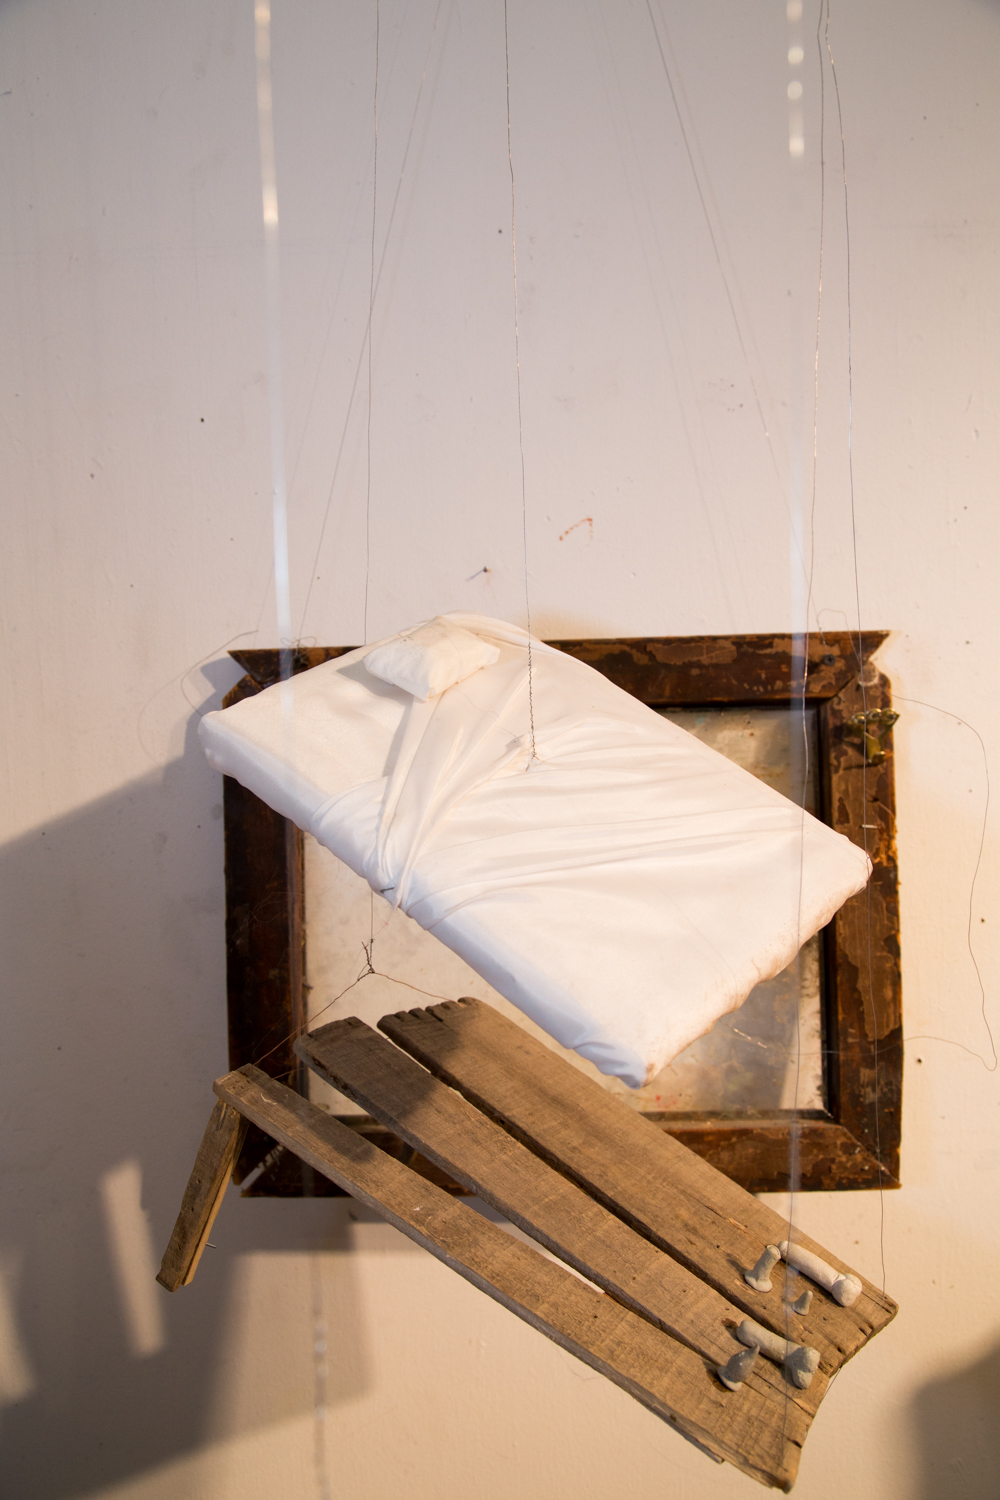 A man's Bed (Part of Sleep Installation)